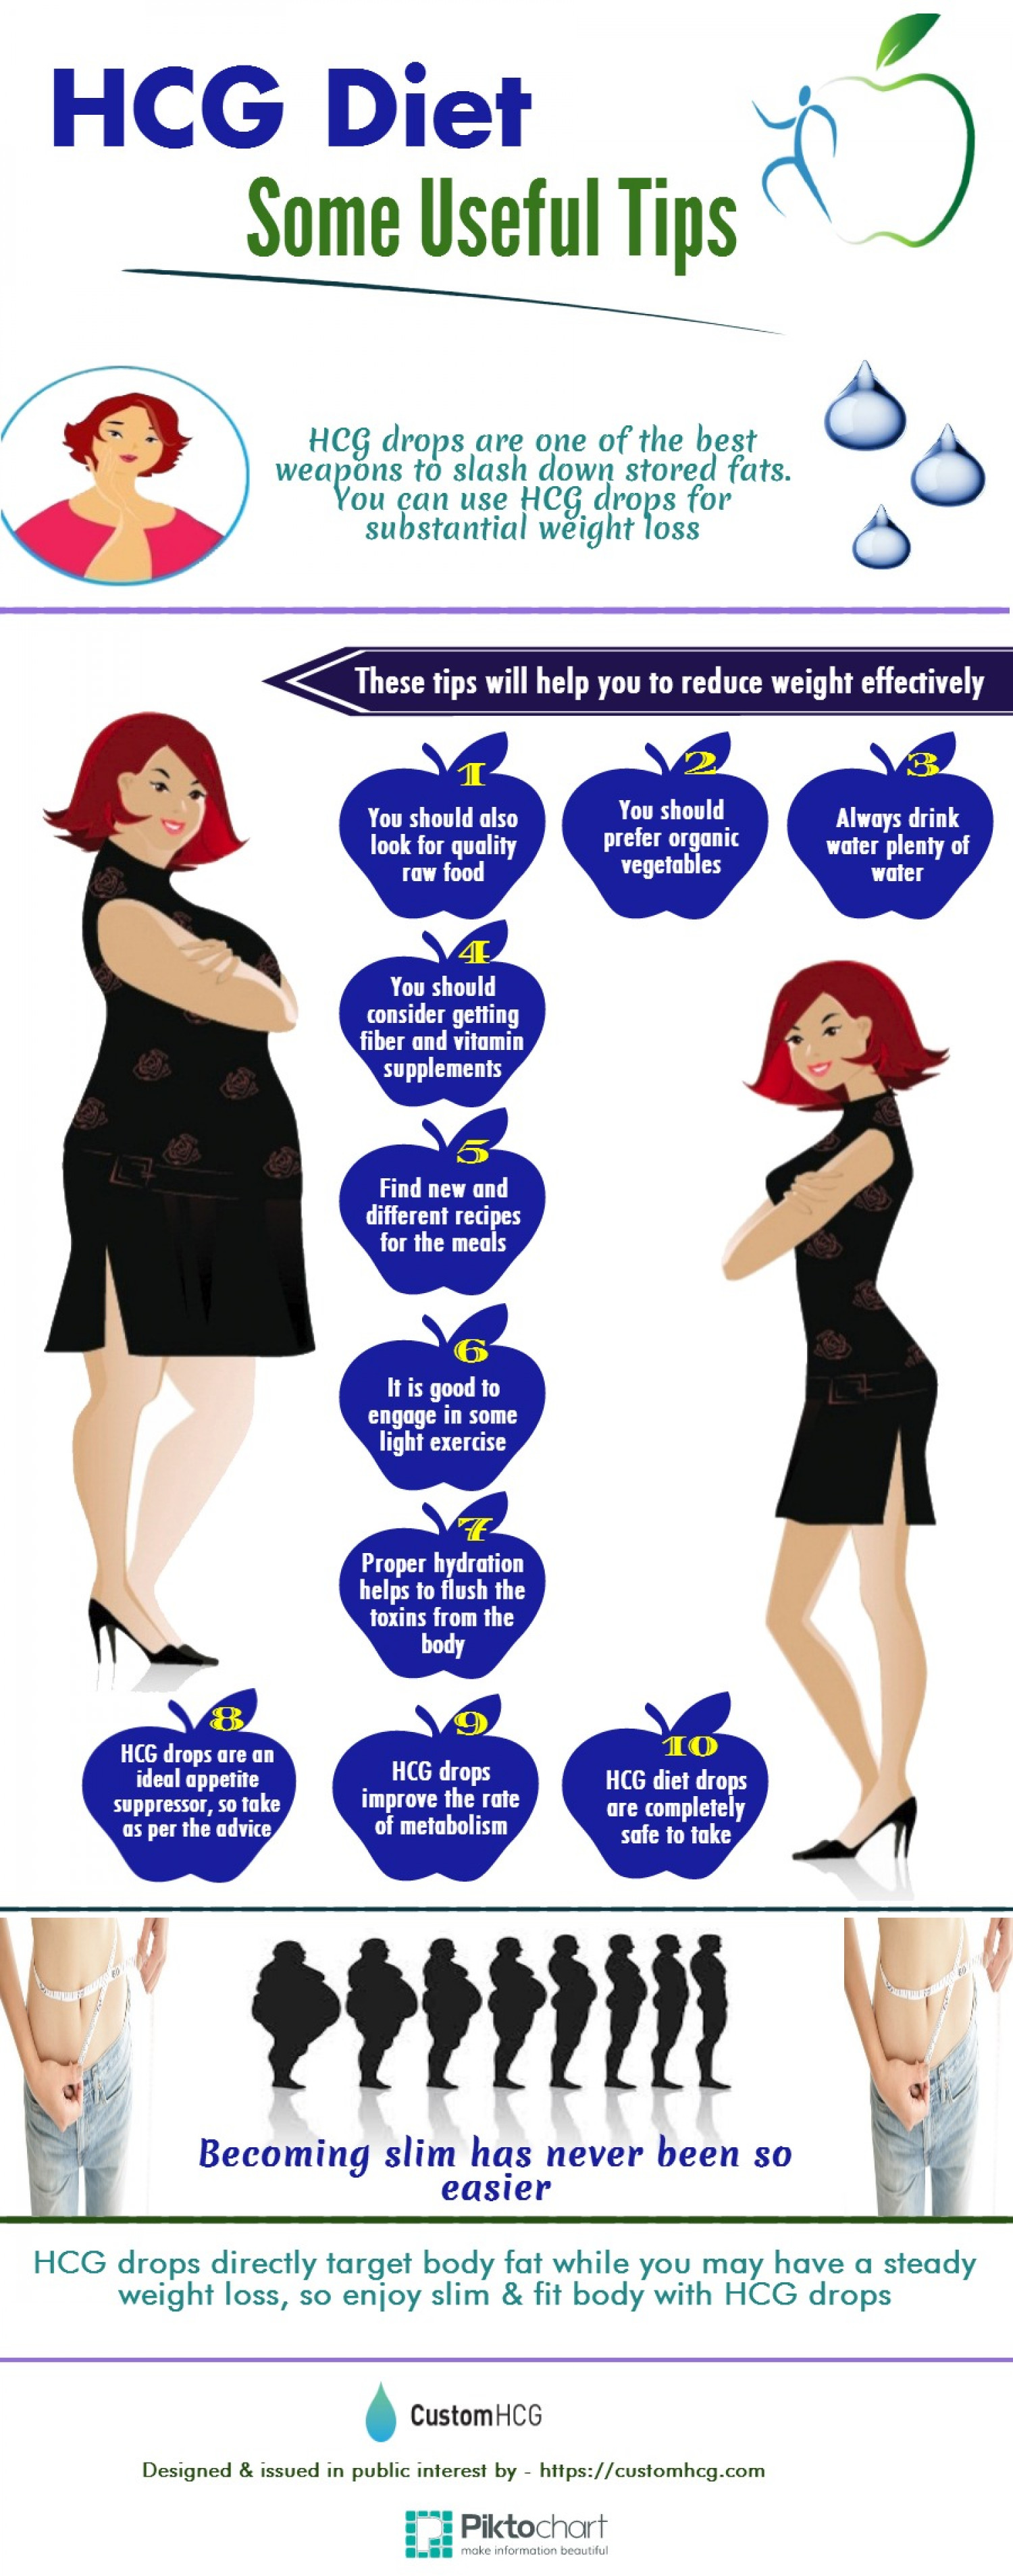 HCG Diet – Some Useful Tips Infographic